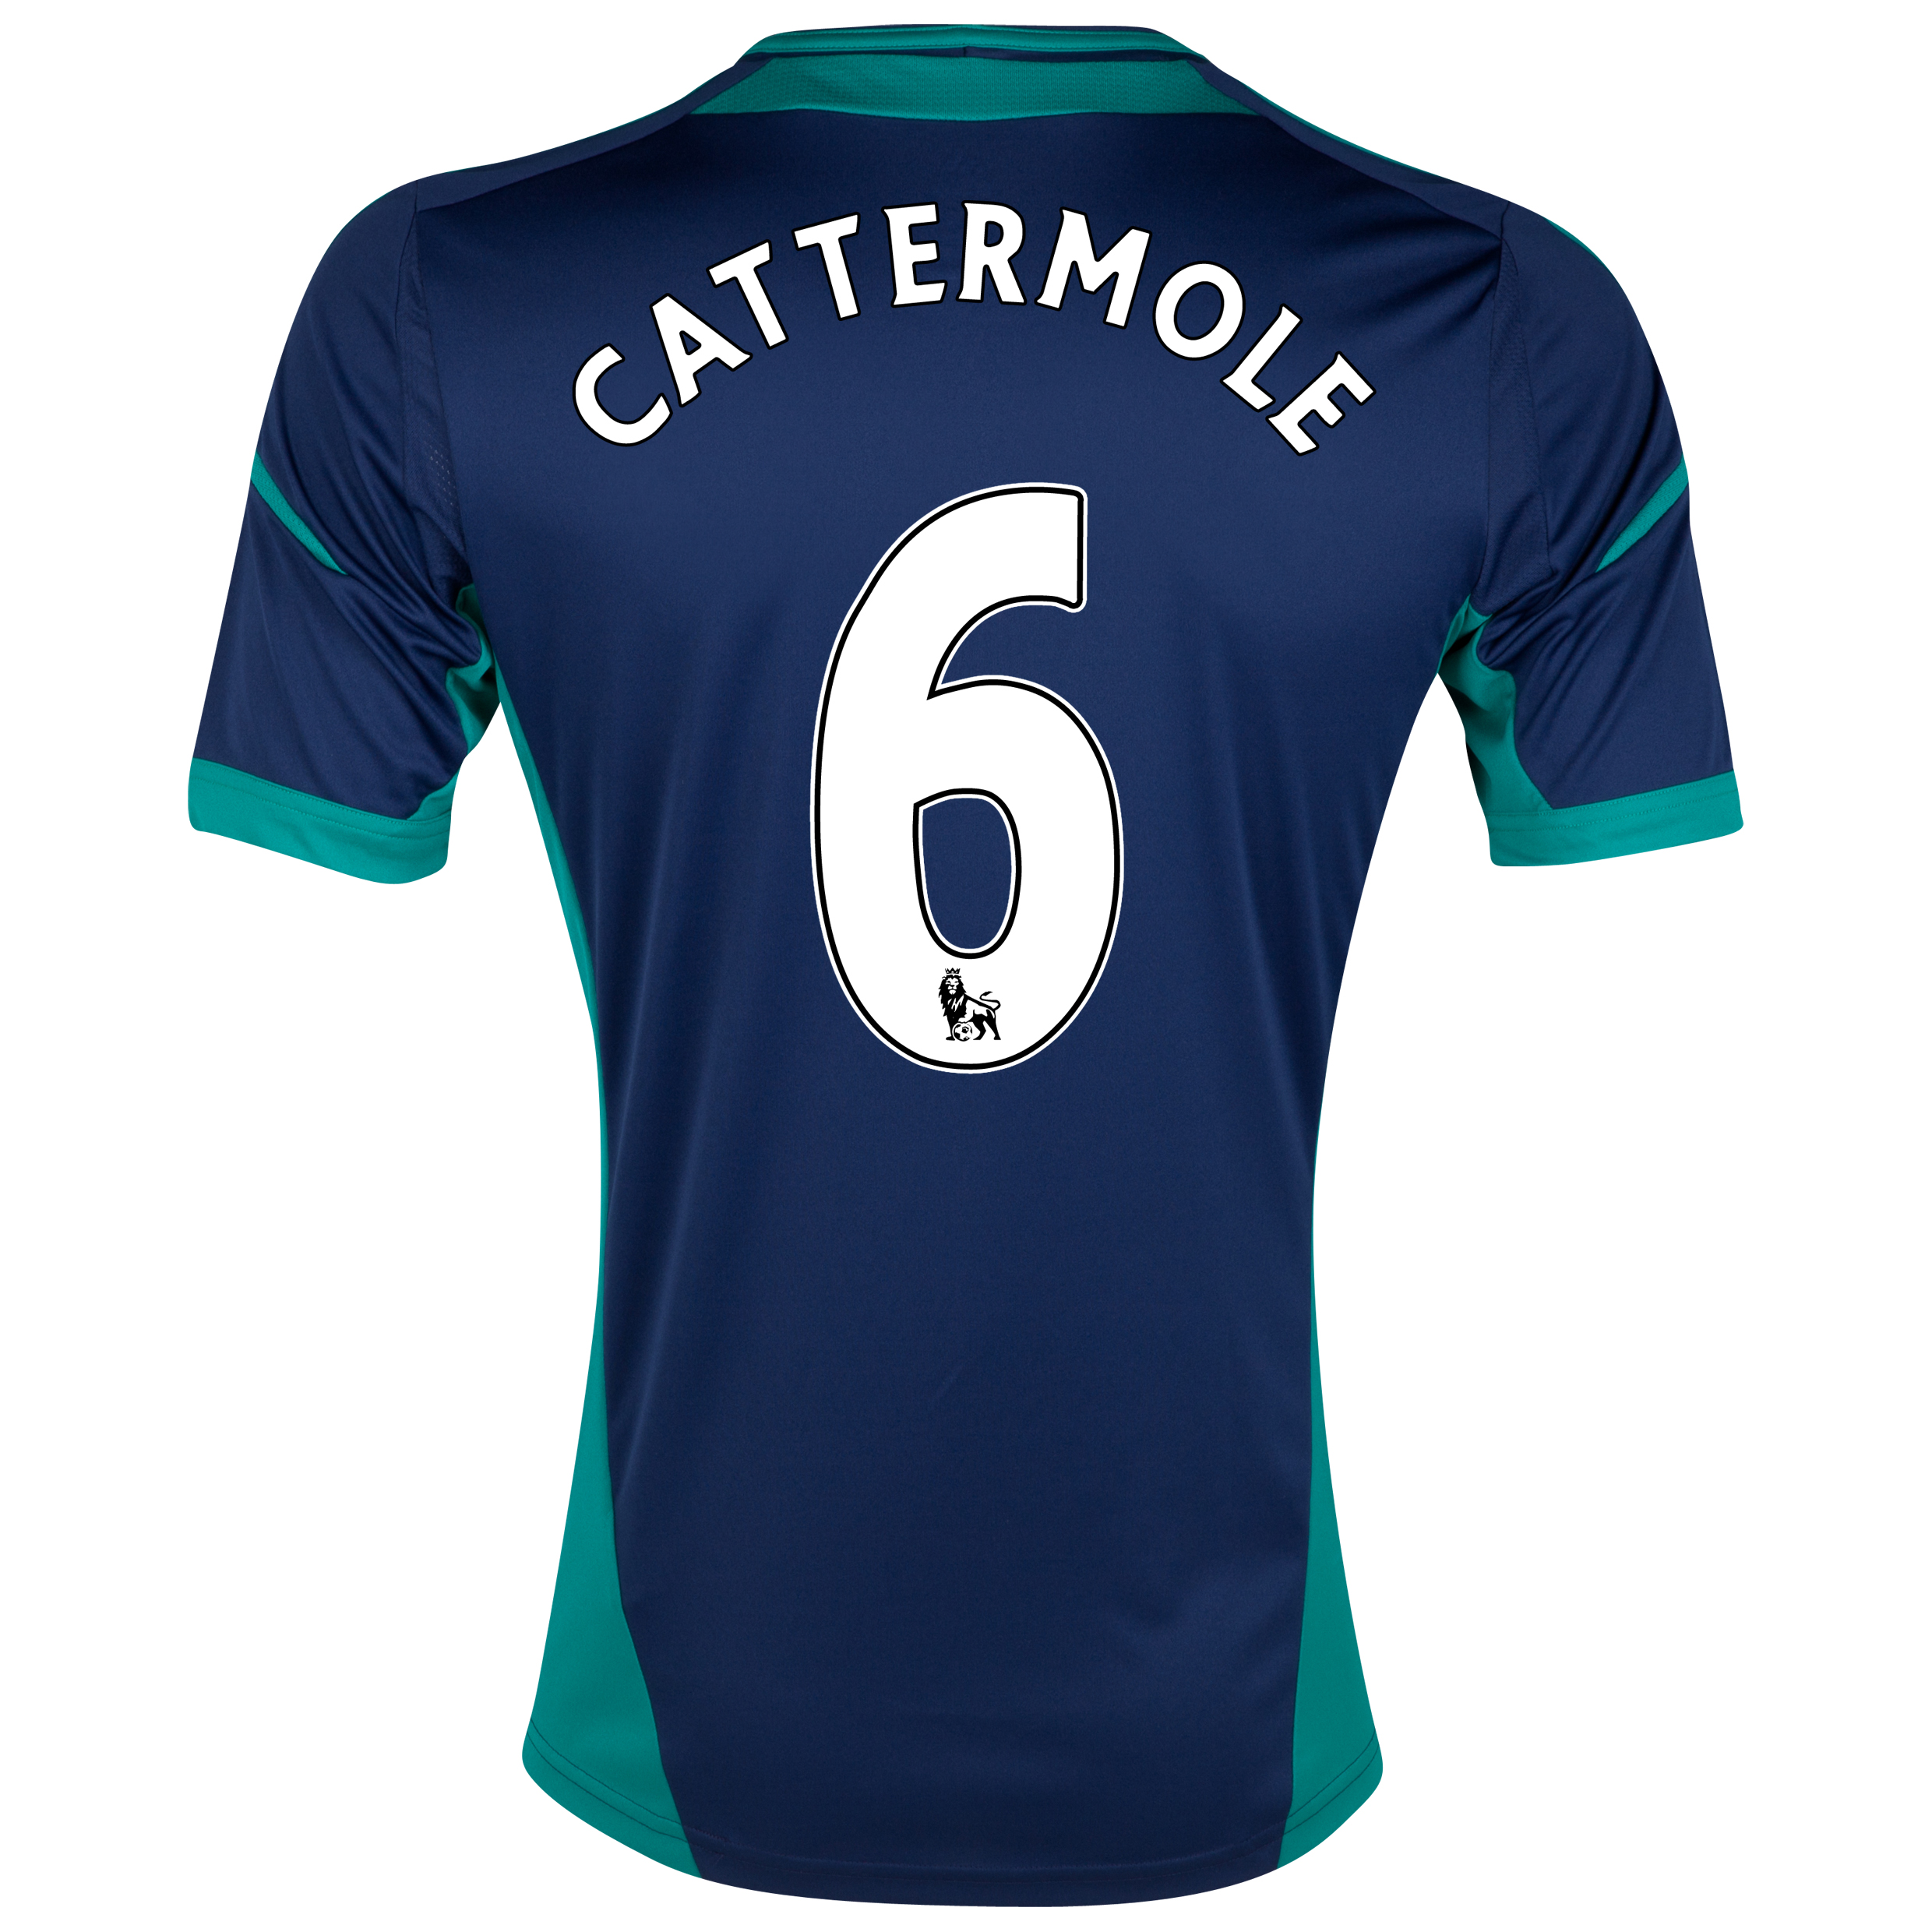 Sunderland Away Shirt 2012/13 with Cattermole 6 printing